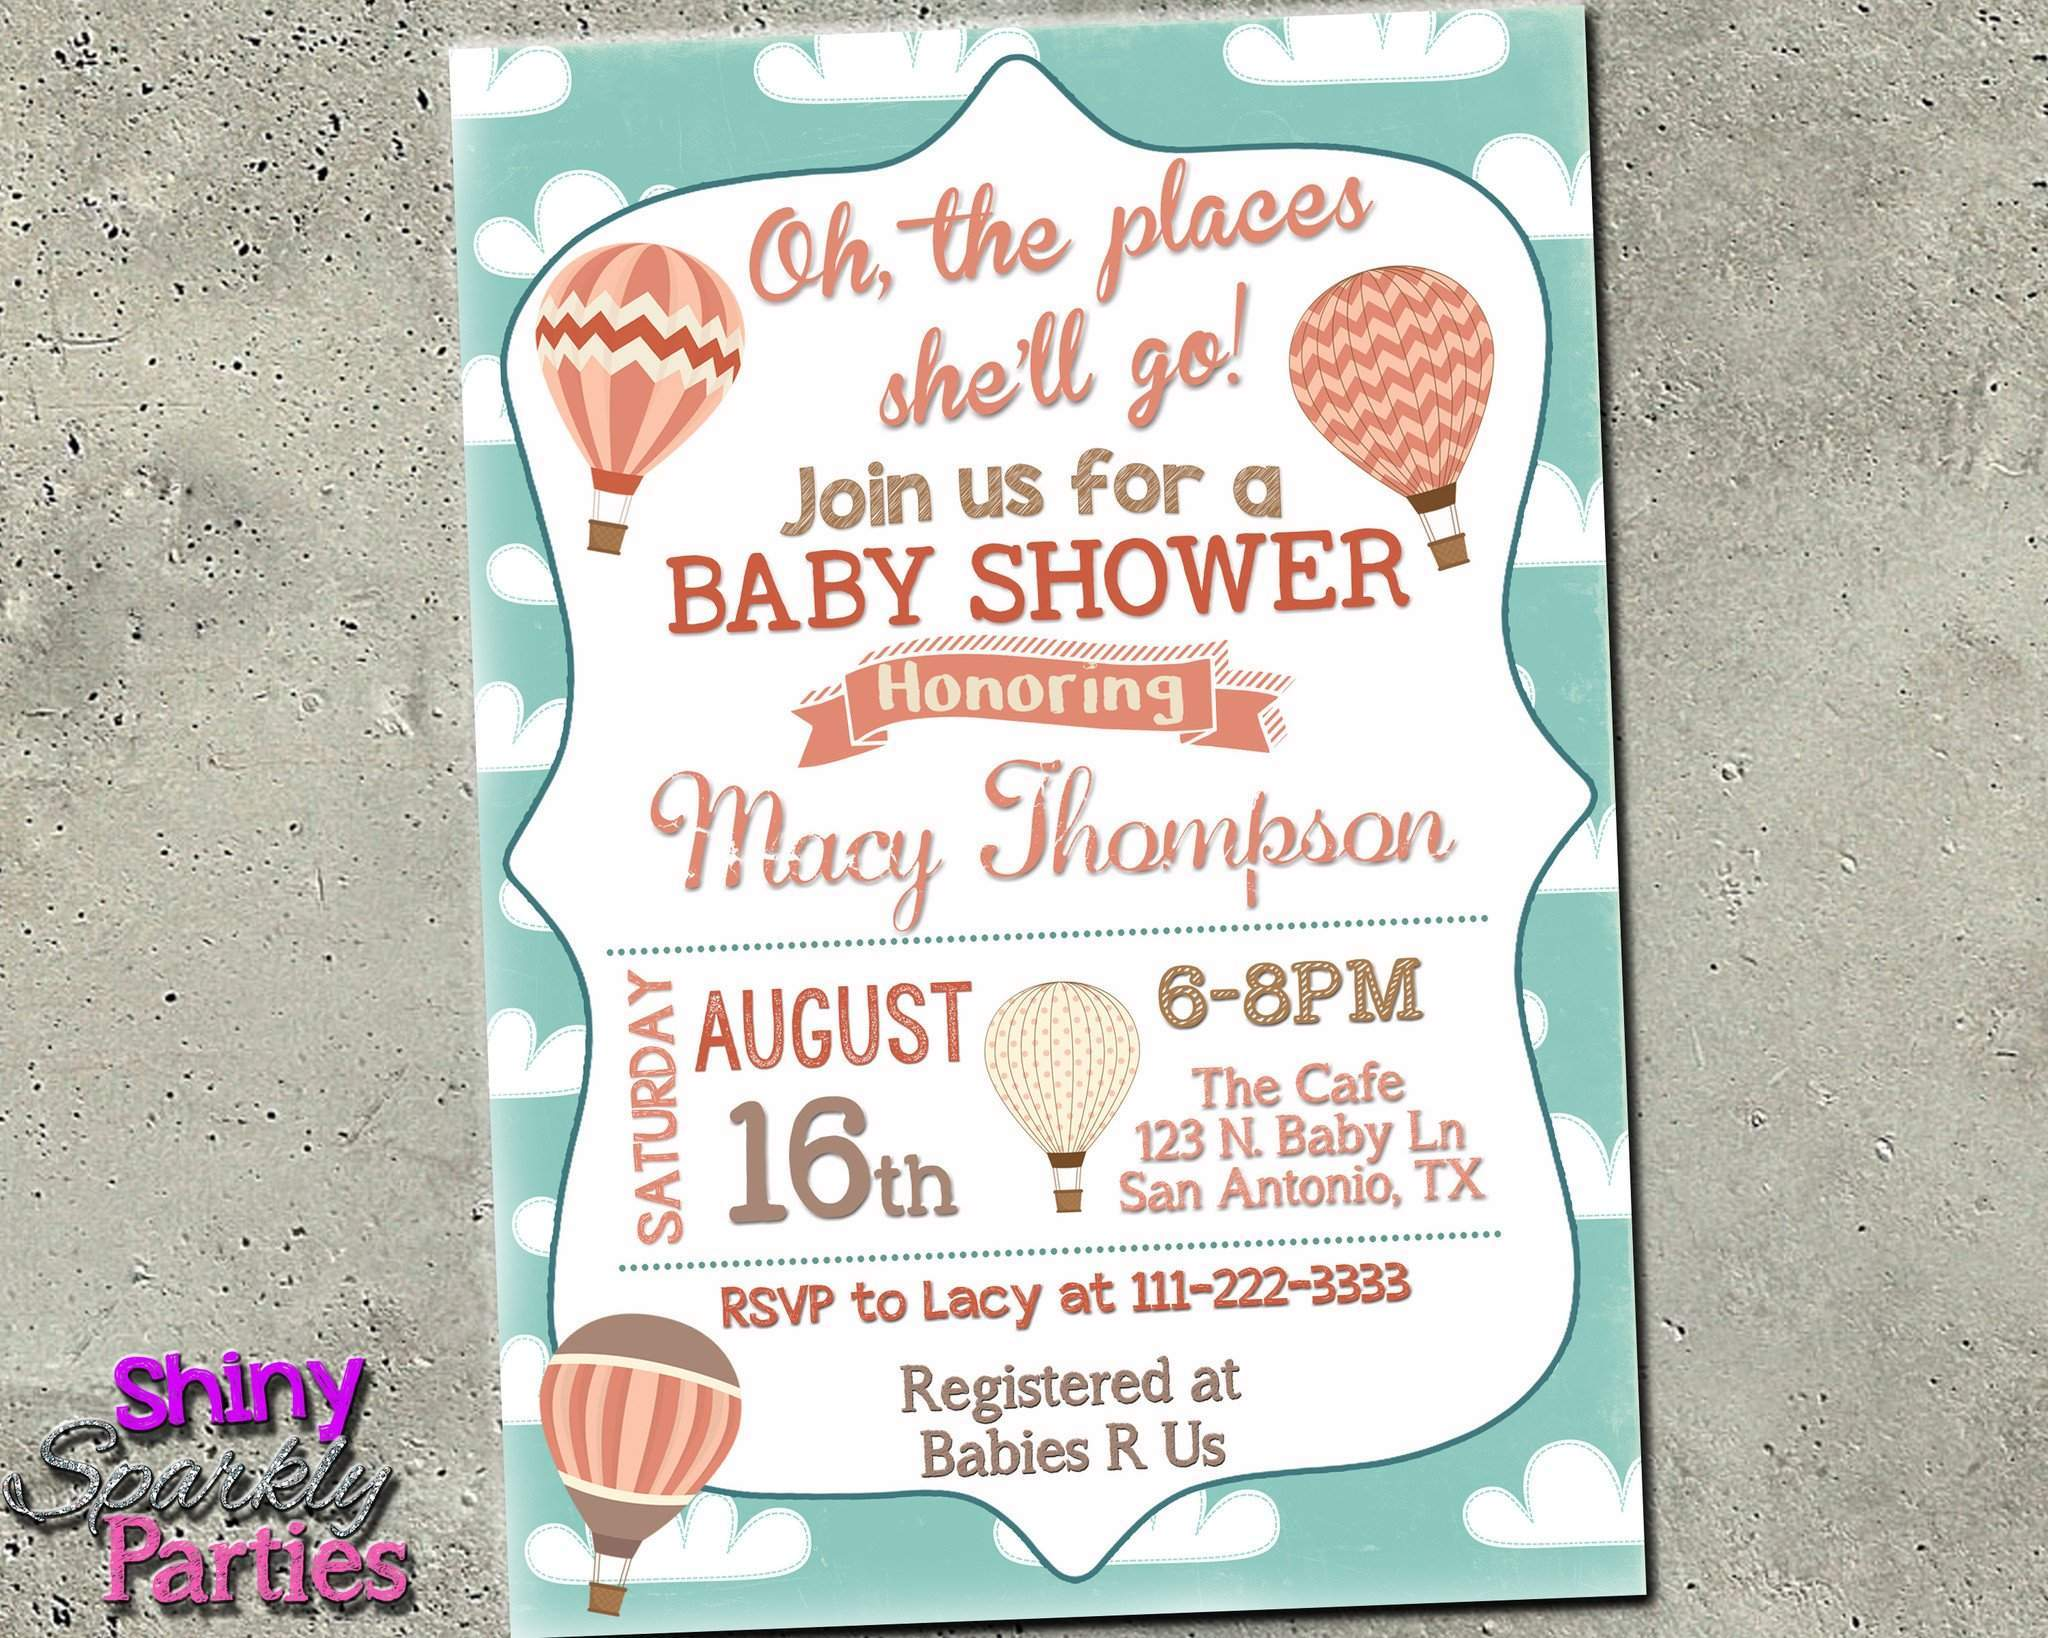 image relating to Oh the Places You'll Go Arrows Printable called Invites - Eternally Fab Boutique